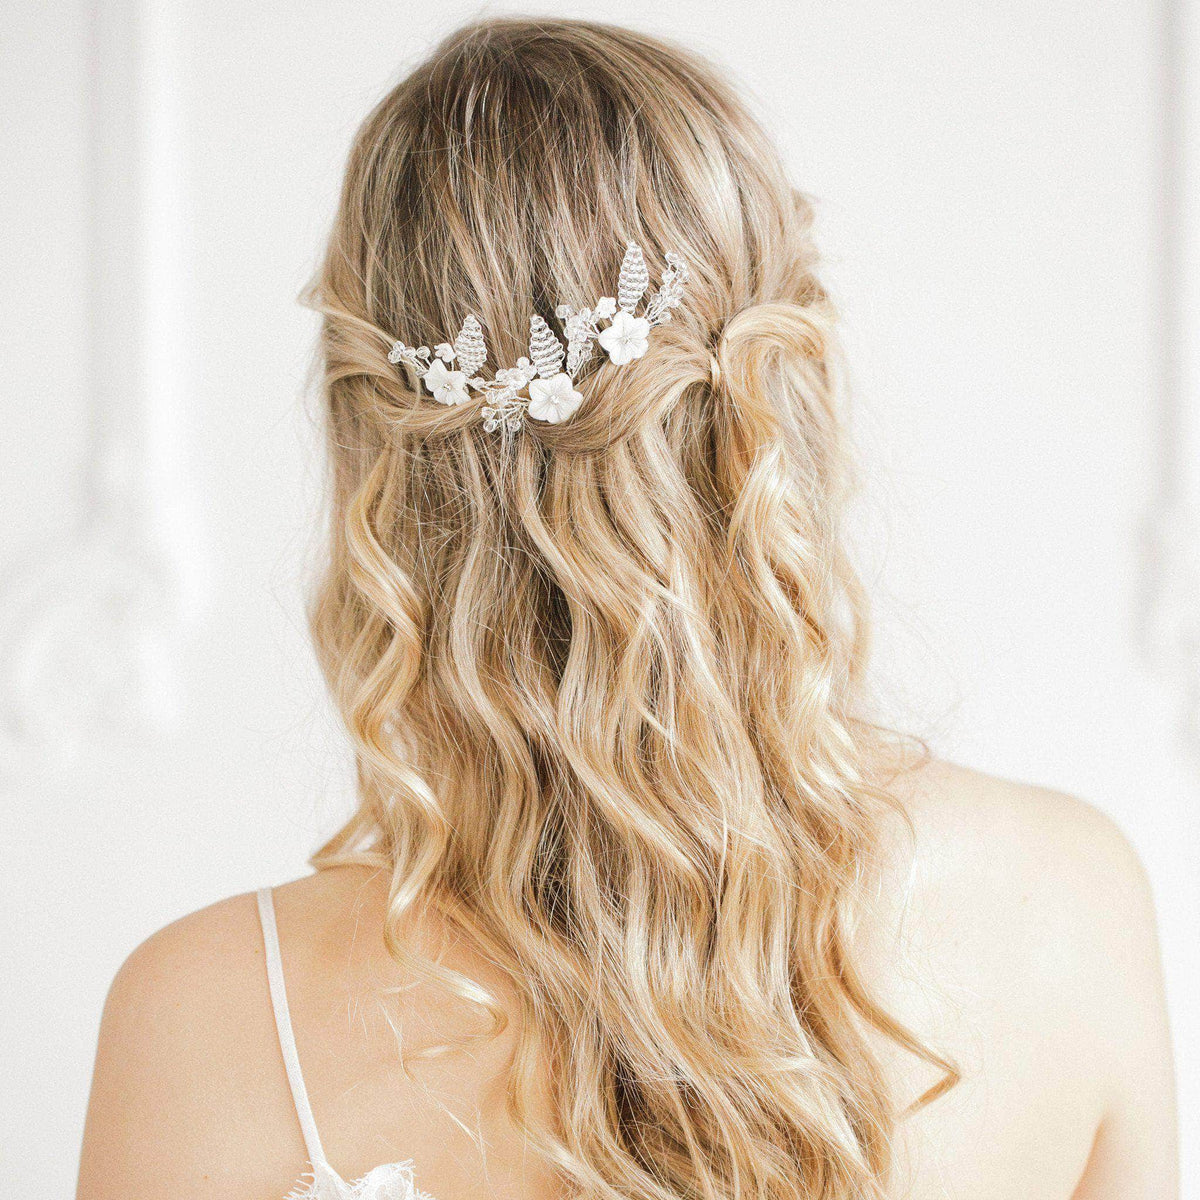 Wedding Hairpin Gold pearl flower wedding hair pins (x3) - 'Blossom'